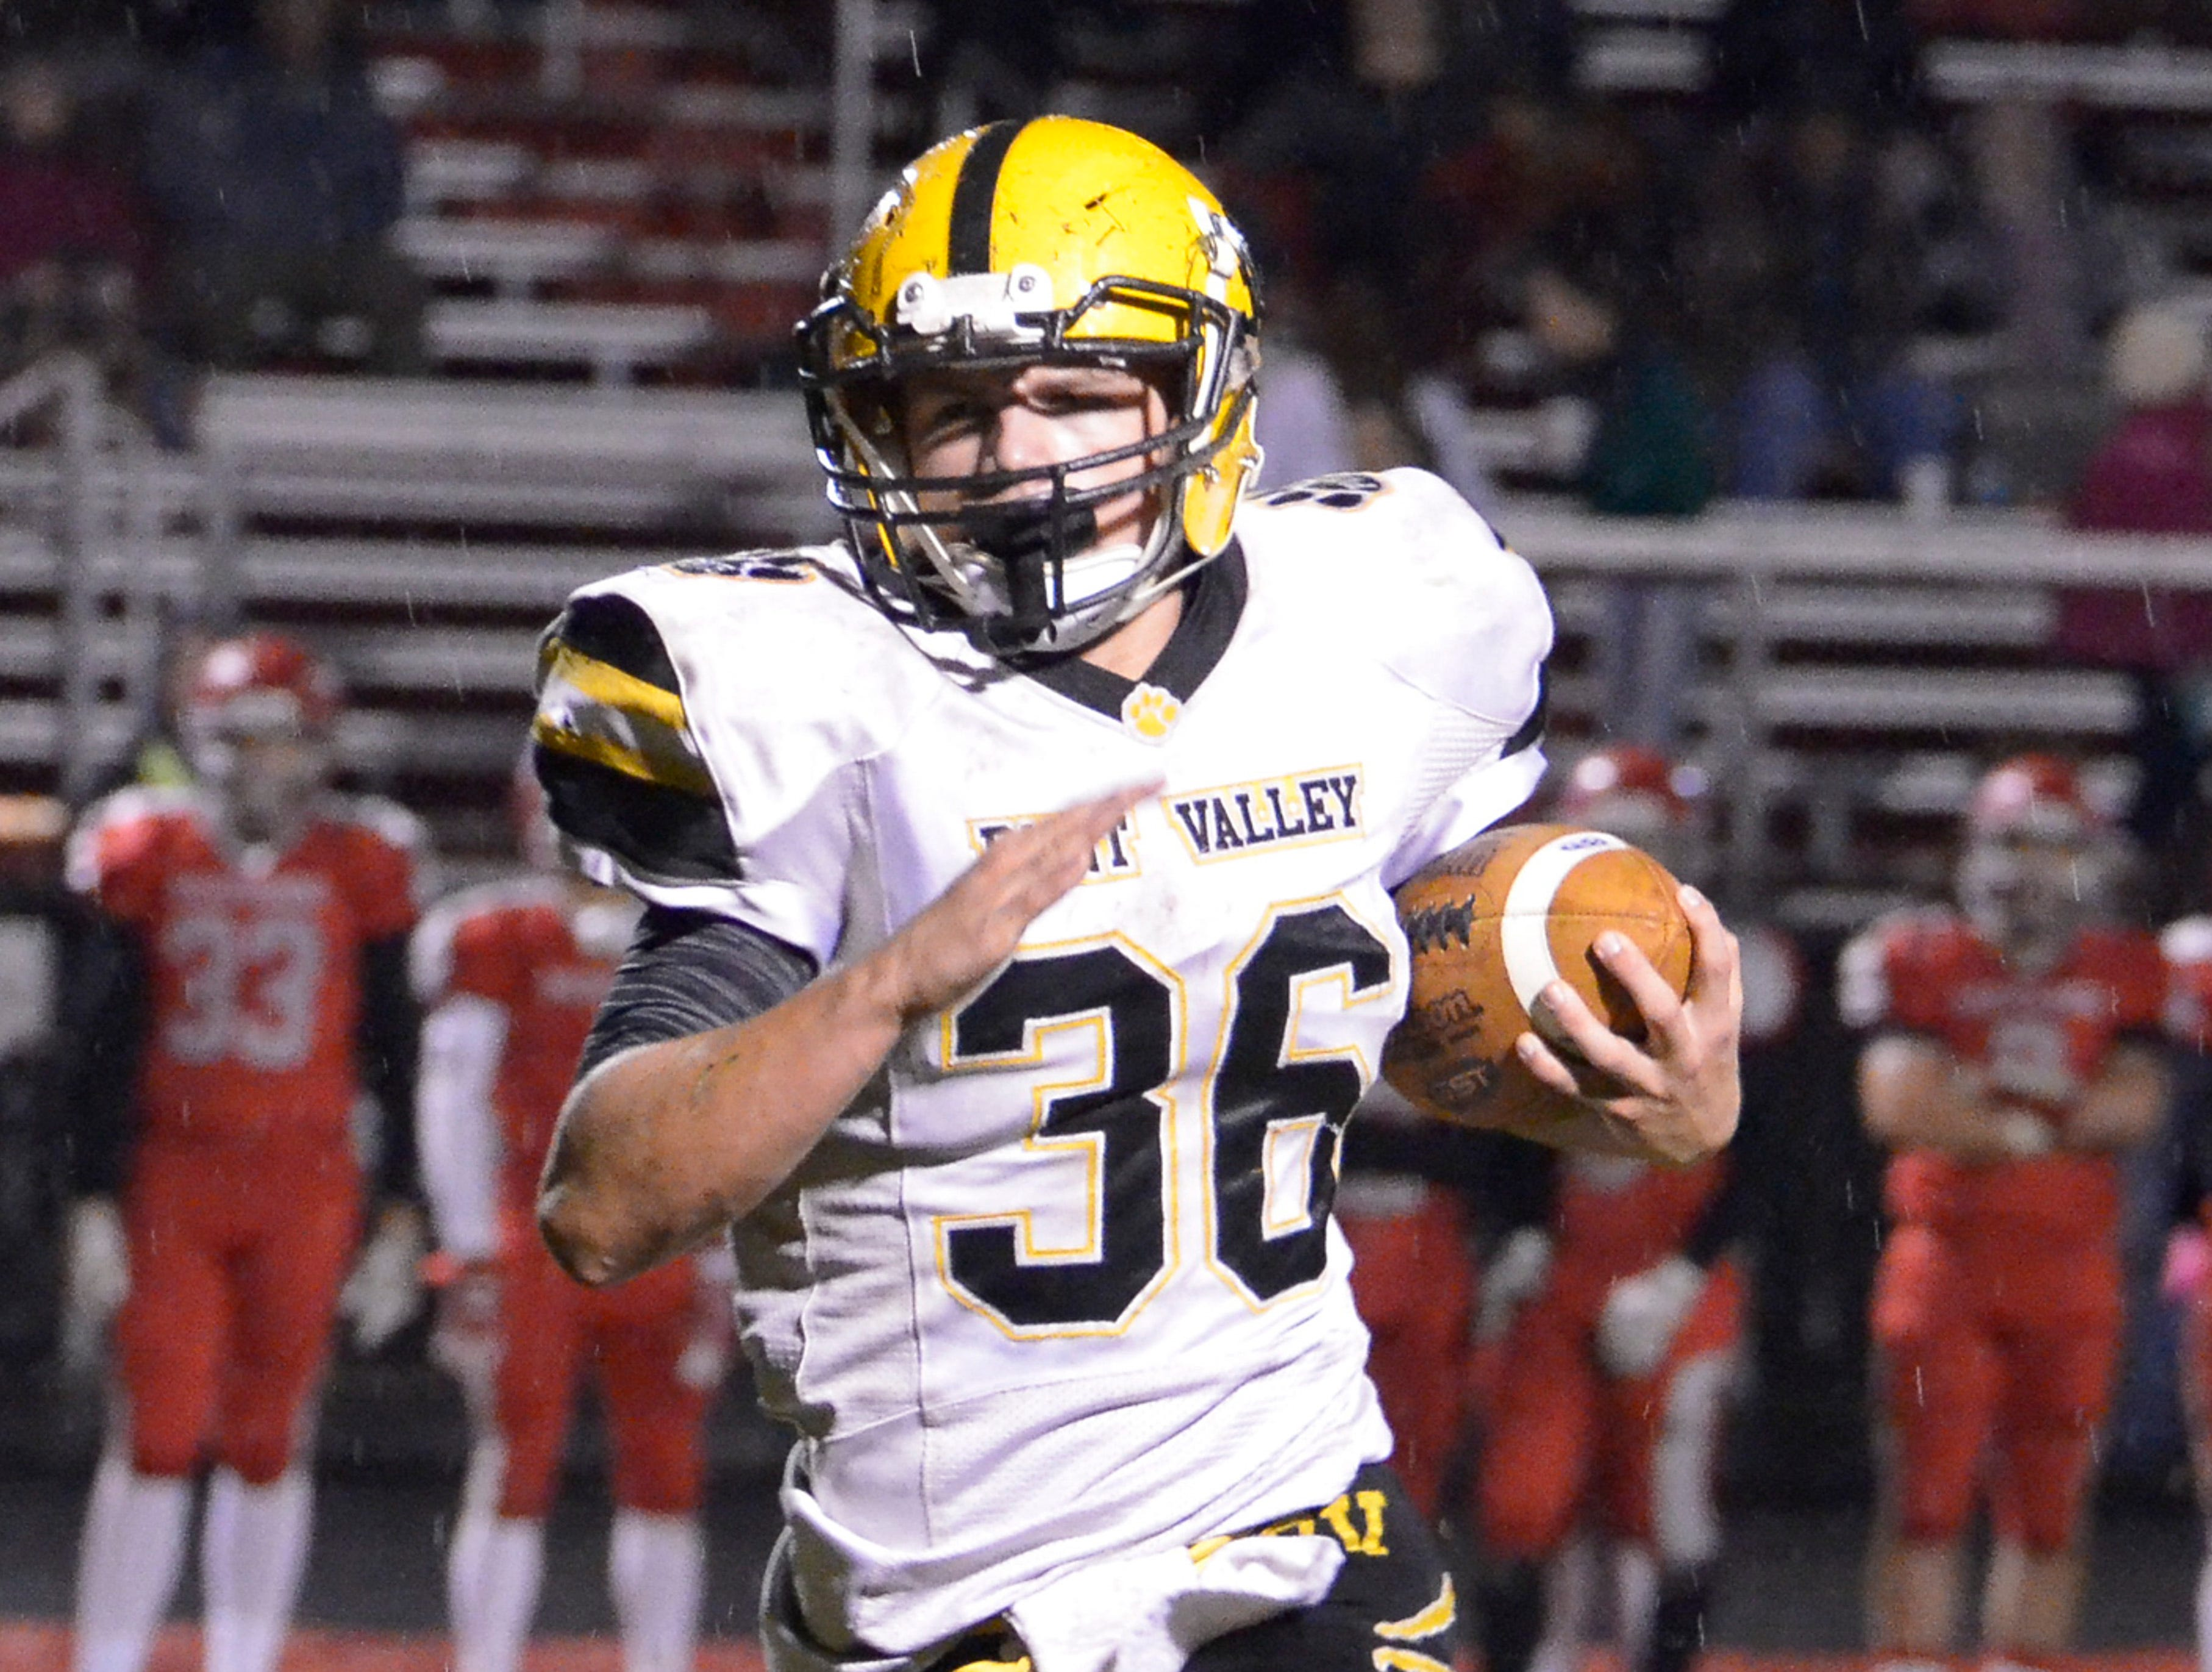 Paint Valley defeated Westfall Friday night at Westfall High School 34-14.